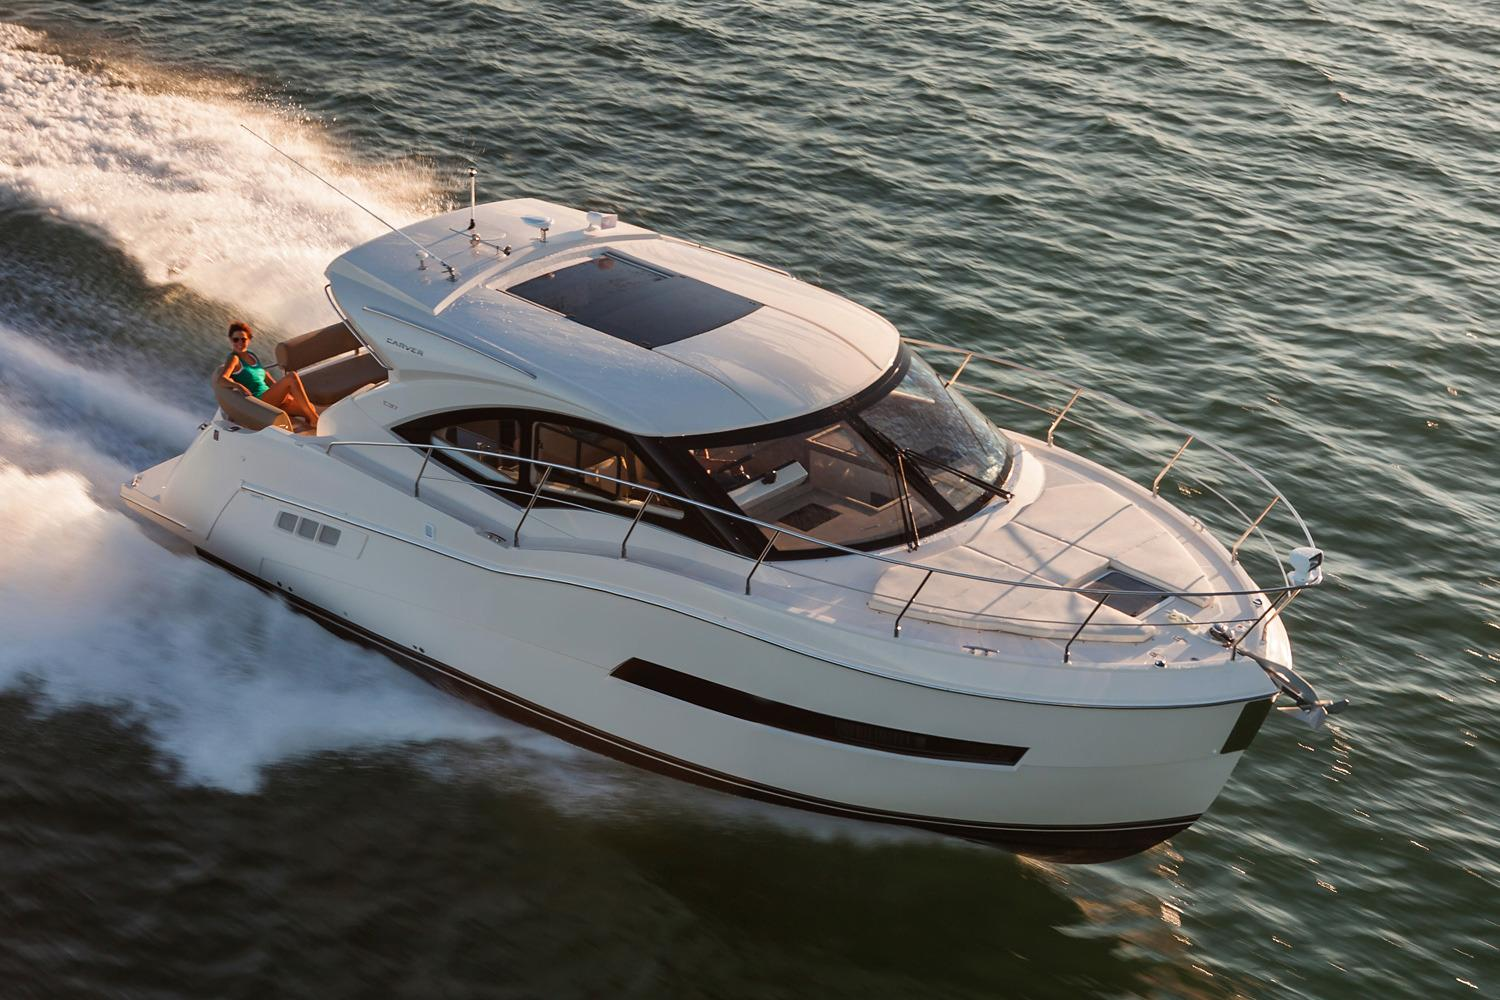 2018 Carver C37 Coupe Power Boat For Sale - www.yachtworld.com